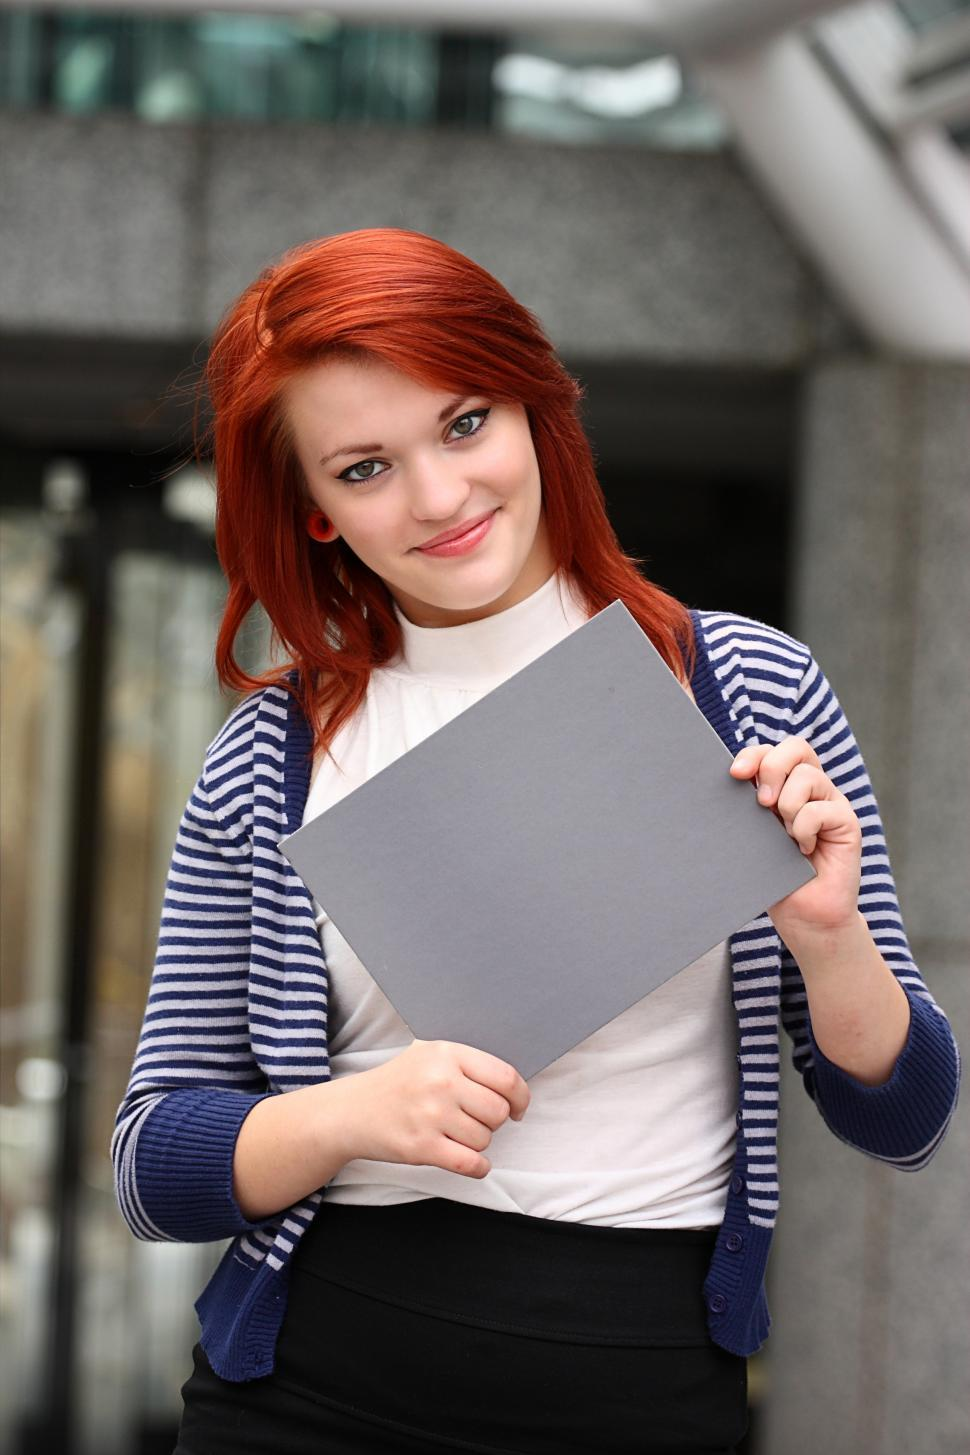 Download Free Stock HD Photo of A beautiful young woman holding a blank card Online